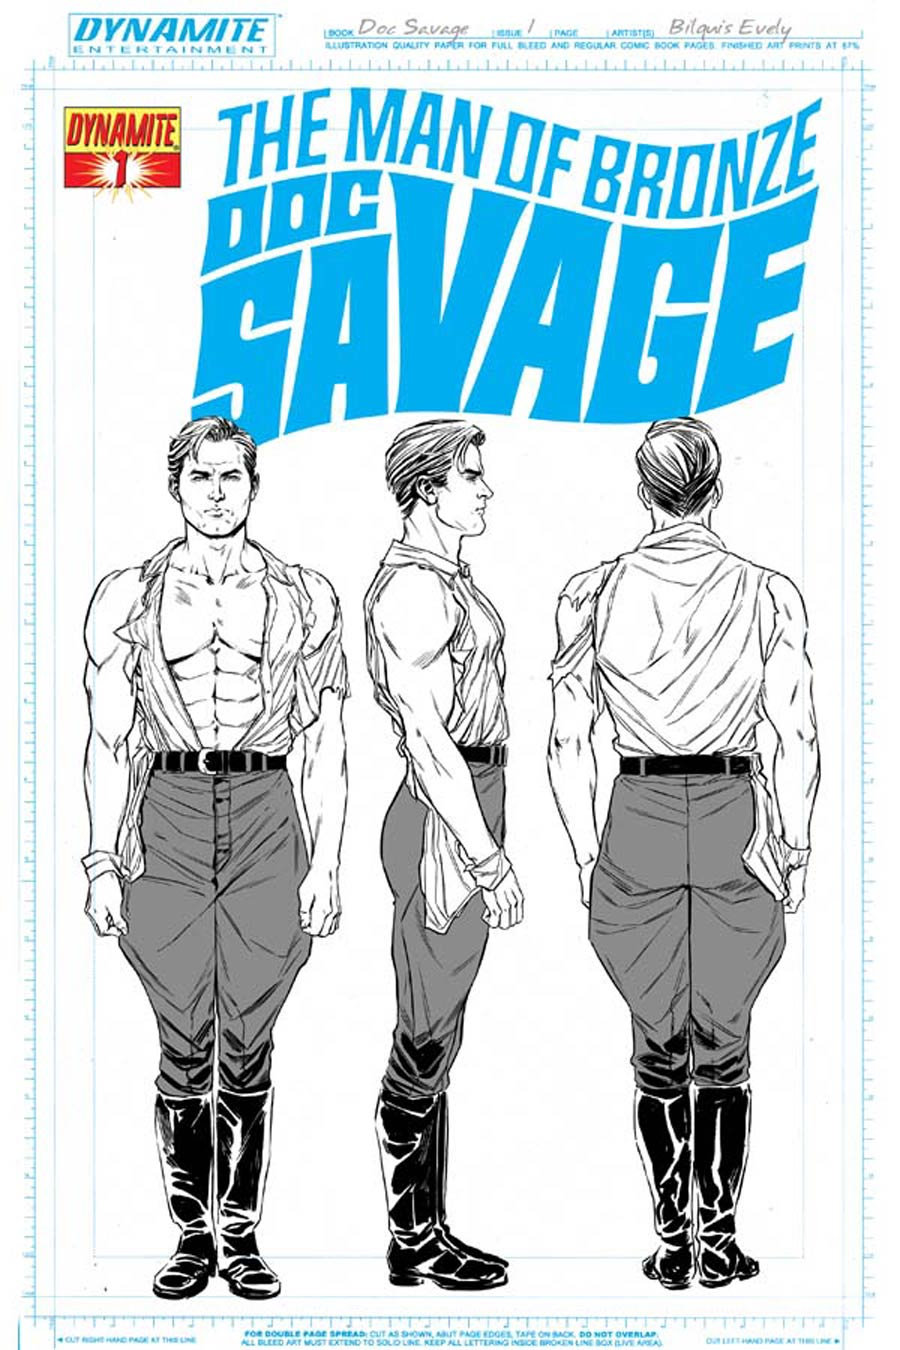 Doc Savage Vol 5 #1 Cover F High-End Bilquis Evely Concept Art Ultra-Limited Cover (ONLY 25 COPIES IN EXISTENCE!)